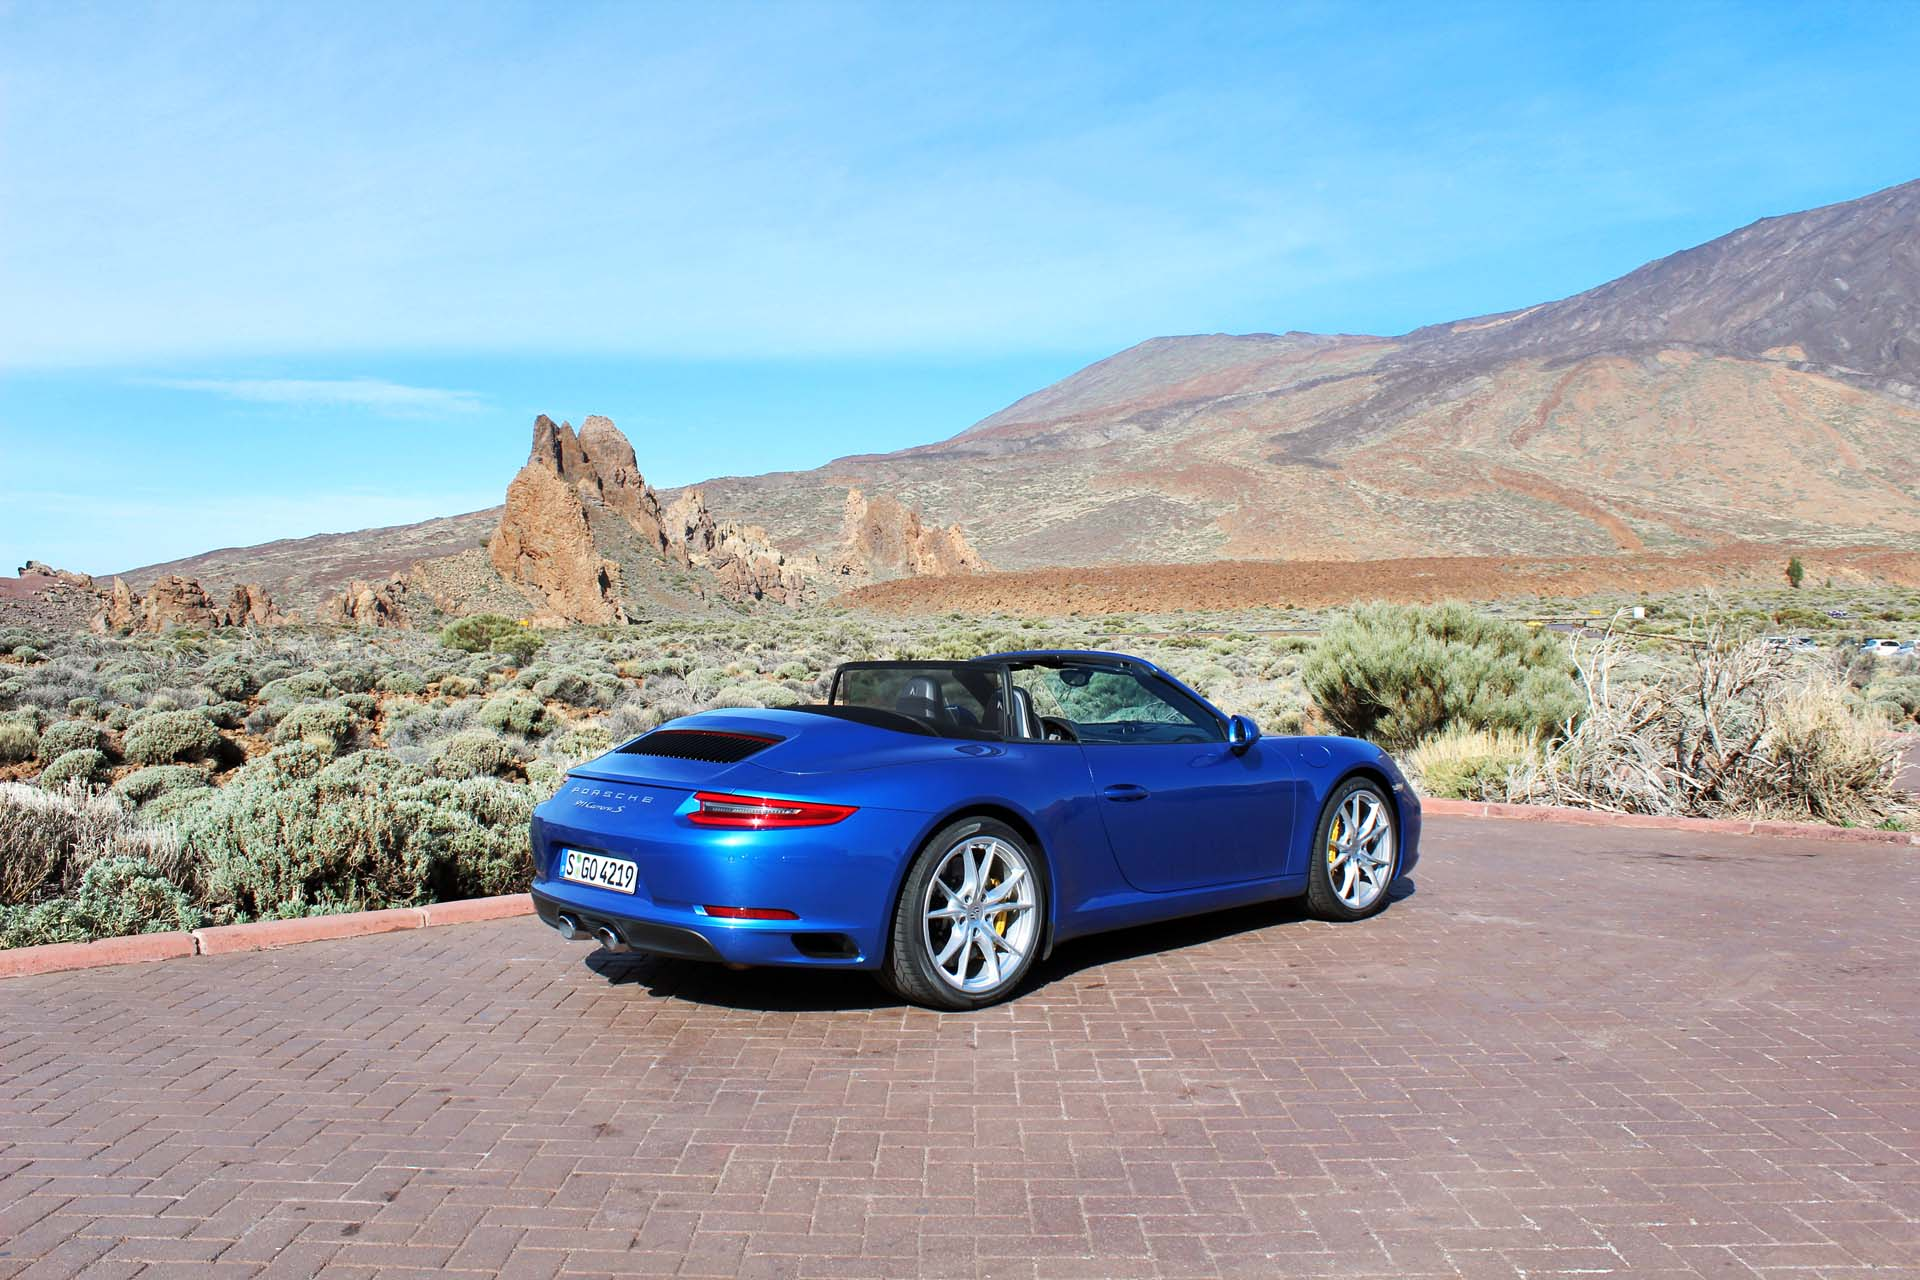 The 2017 Porsche 911 Carrera Cabriolet starts at $116,200. This is a Carrera S Cabriolet – base price $132,200. That volcano last erupted in 1798. If it happens again, the 911's roof goes up in less than 20 seconds.